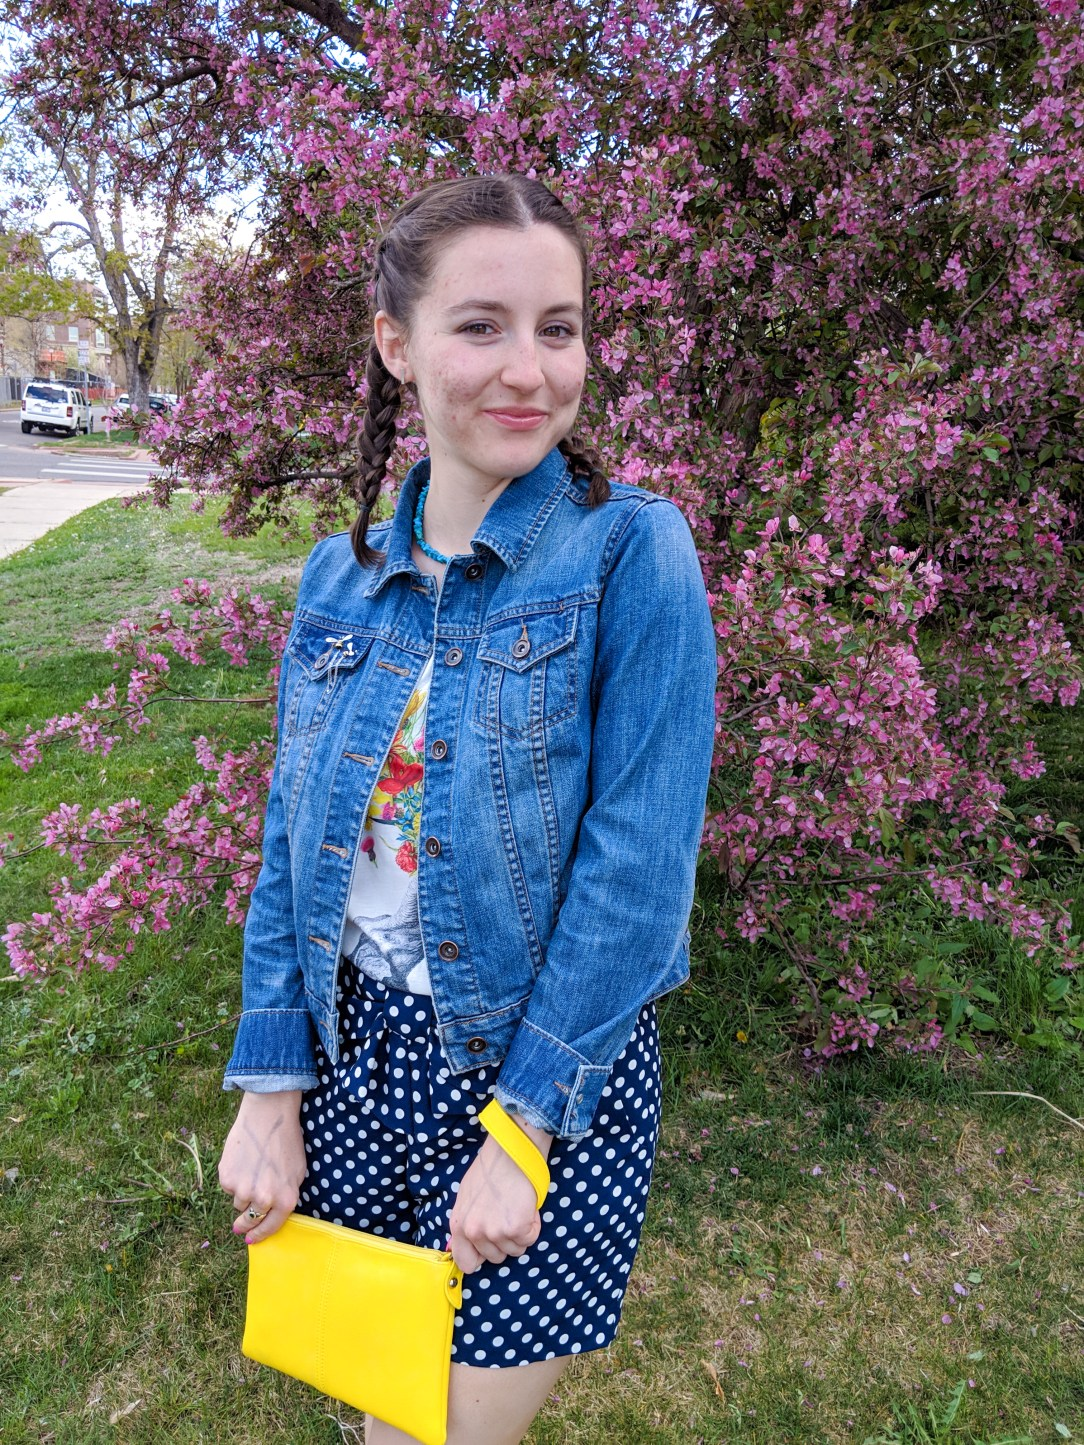 polka dot shorts, graphic tee, yellow purse, jean jacket